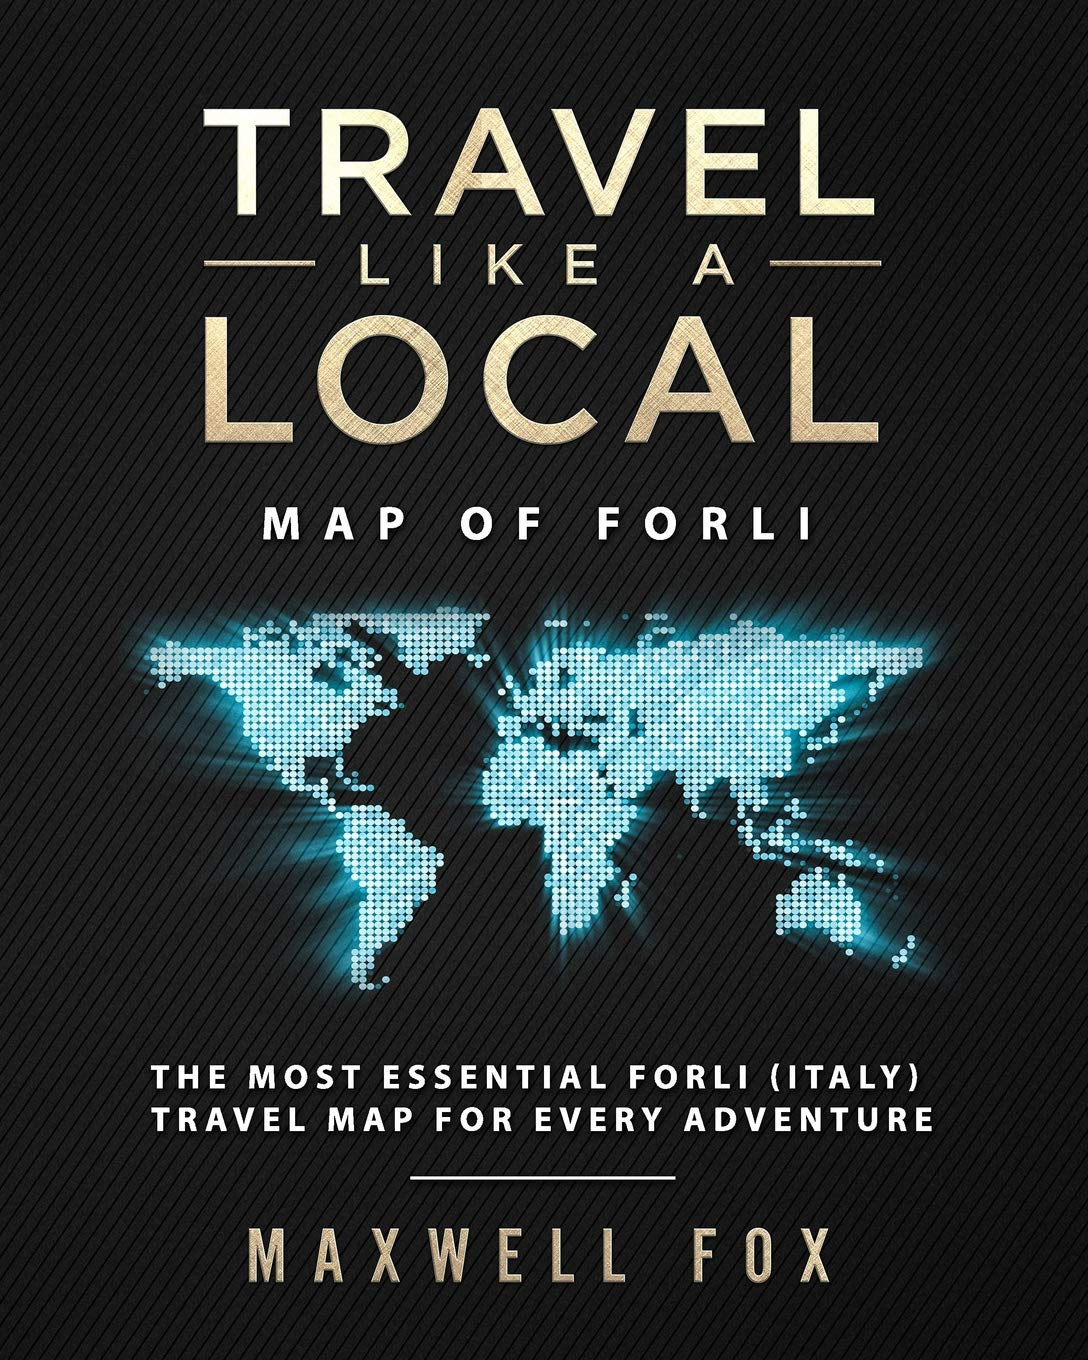 Travel Like a Local - Map of Forli: The Most Essential Forli (Italy) Travel Map for Every Adventure PDF